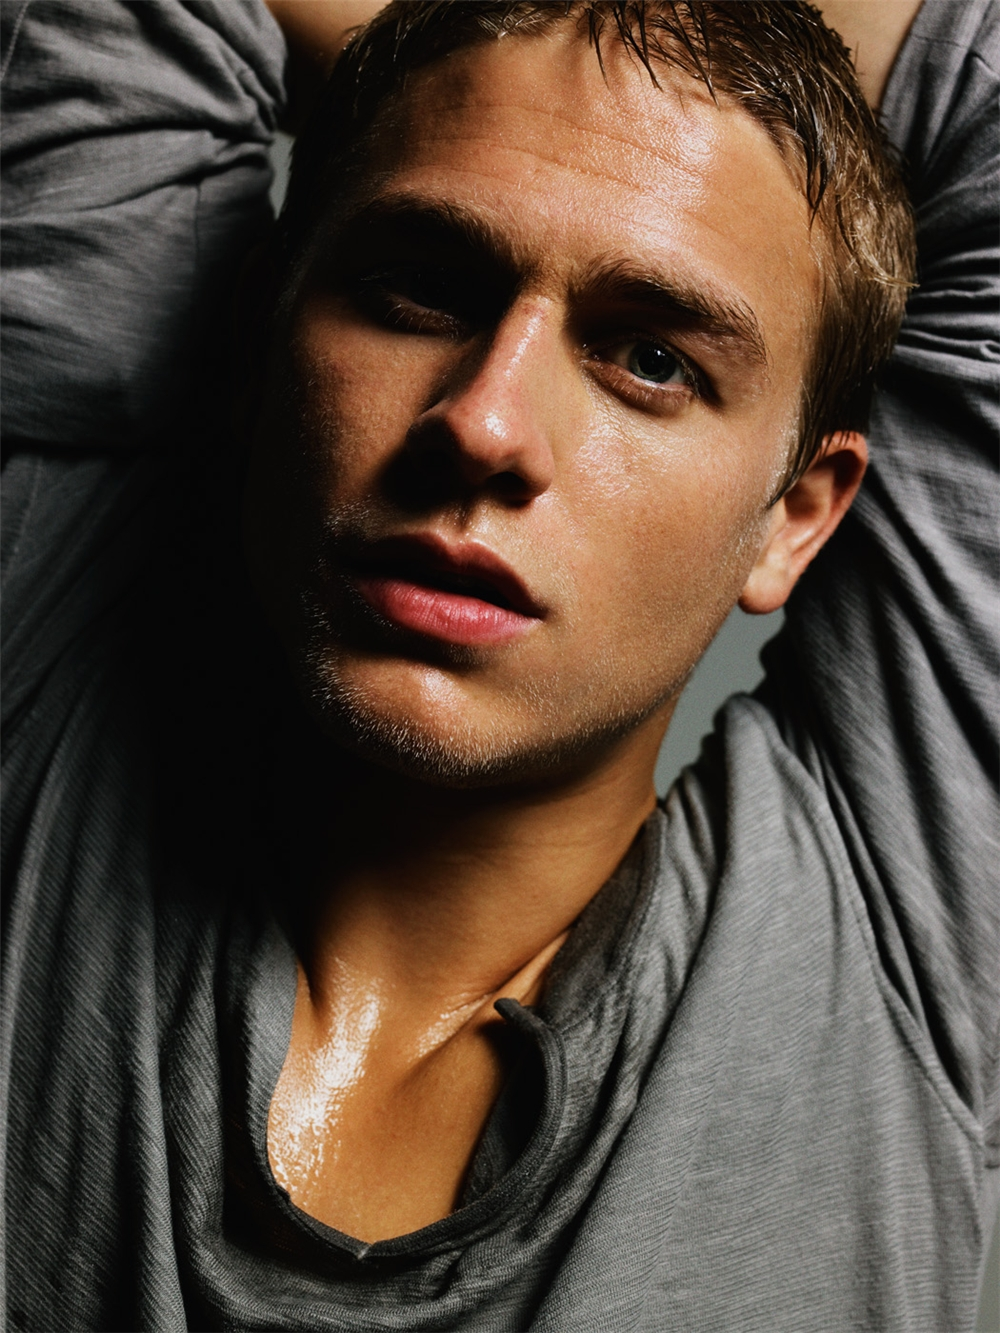 Charlie Hunnam - Charlie Hunnam Photo (28645800) - Fanpop fanclubs